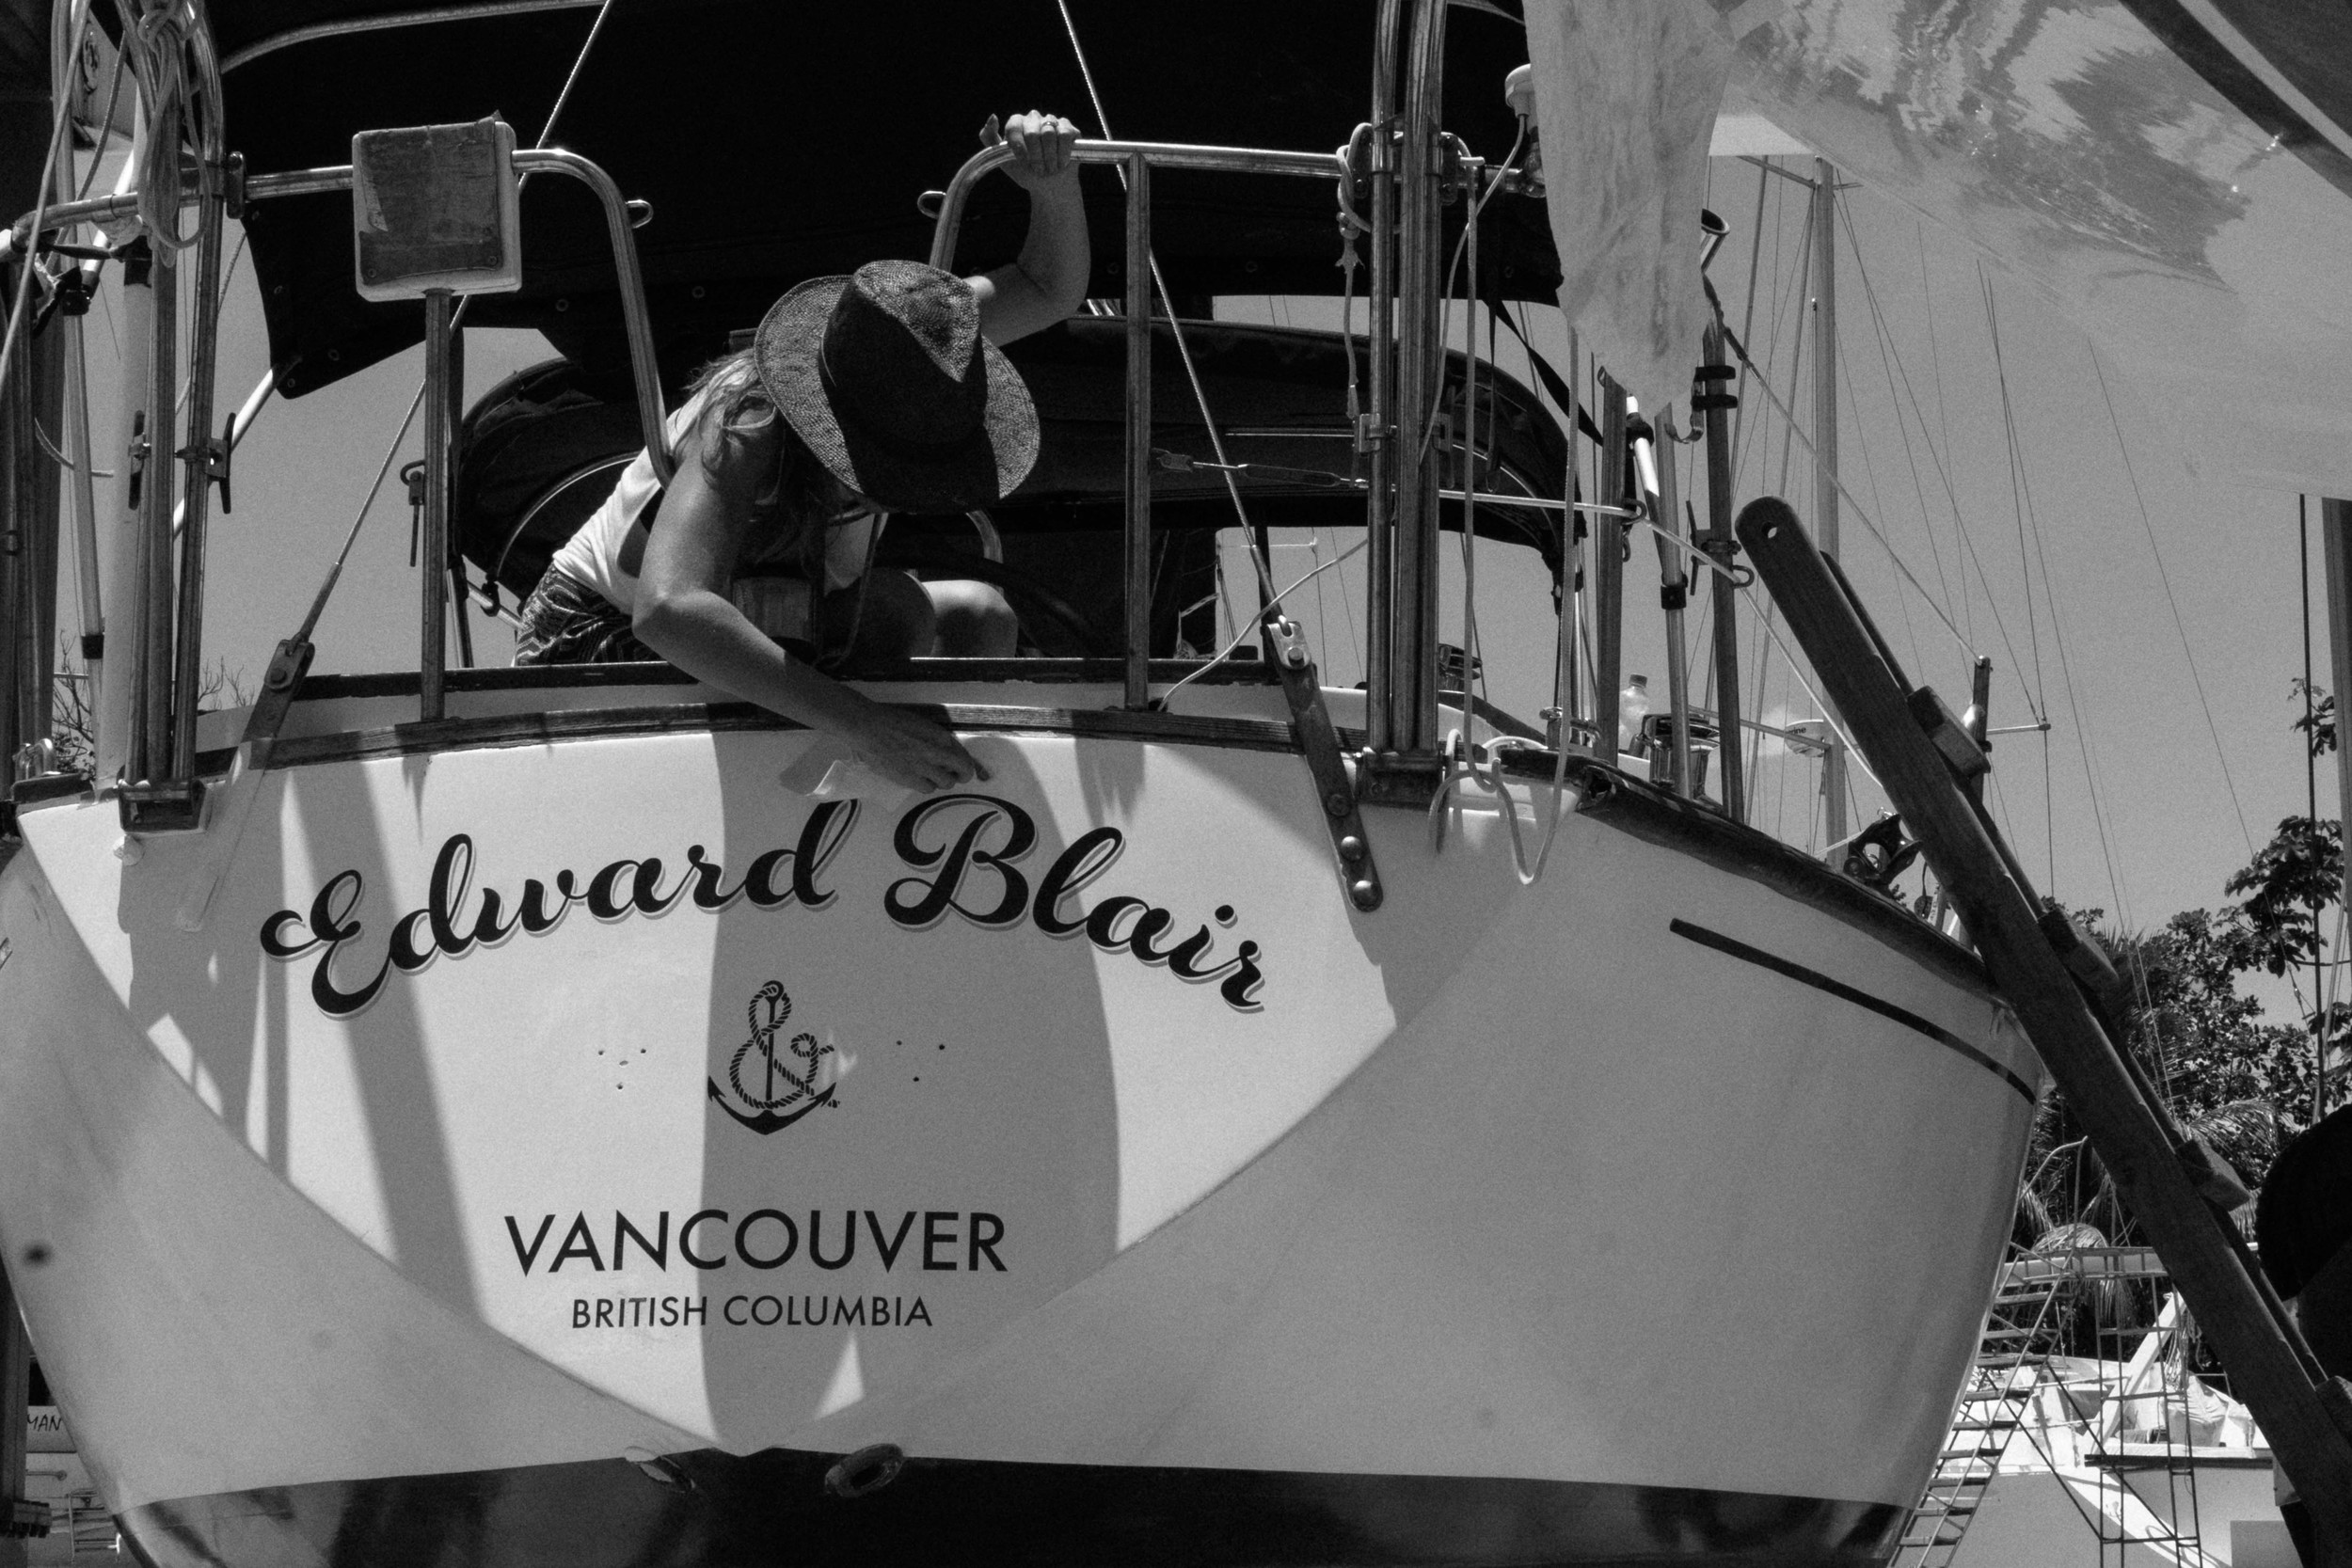 """Transom typefaces: Rosarian, """"Edward Blair"""" and Futura, """"Vancouver, British Columbia""""  Hand drawn """"&""""anchor logo by our friend Tyler Quarles"""